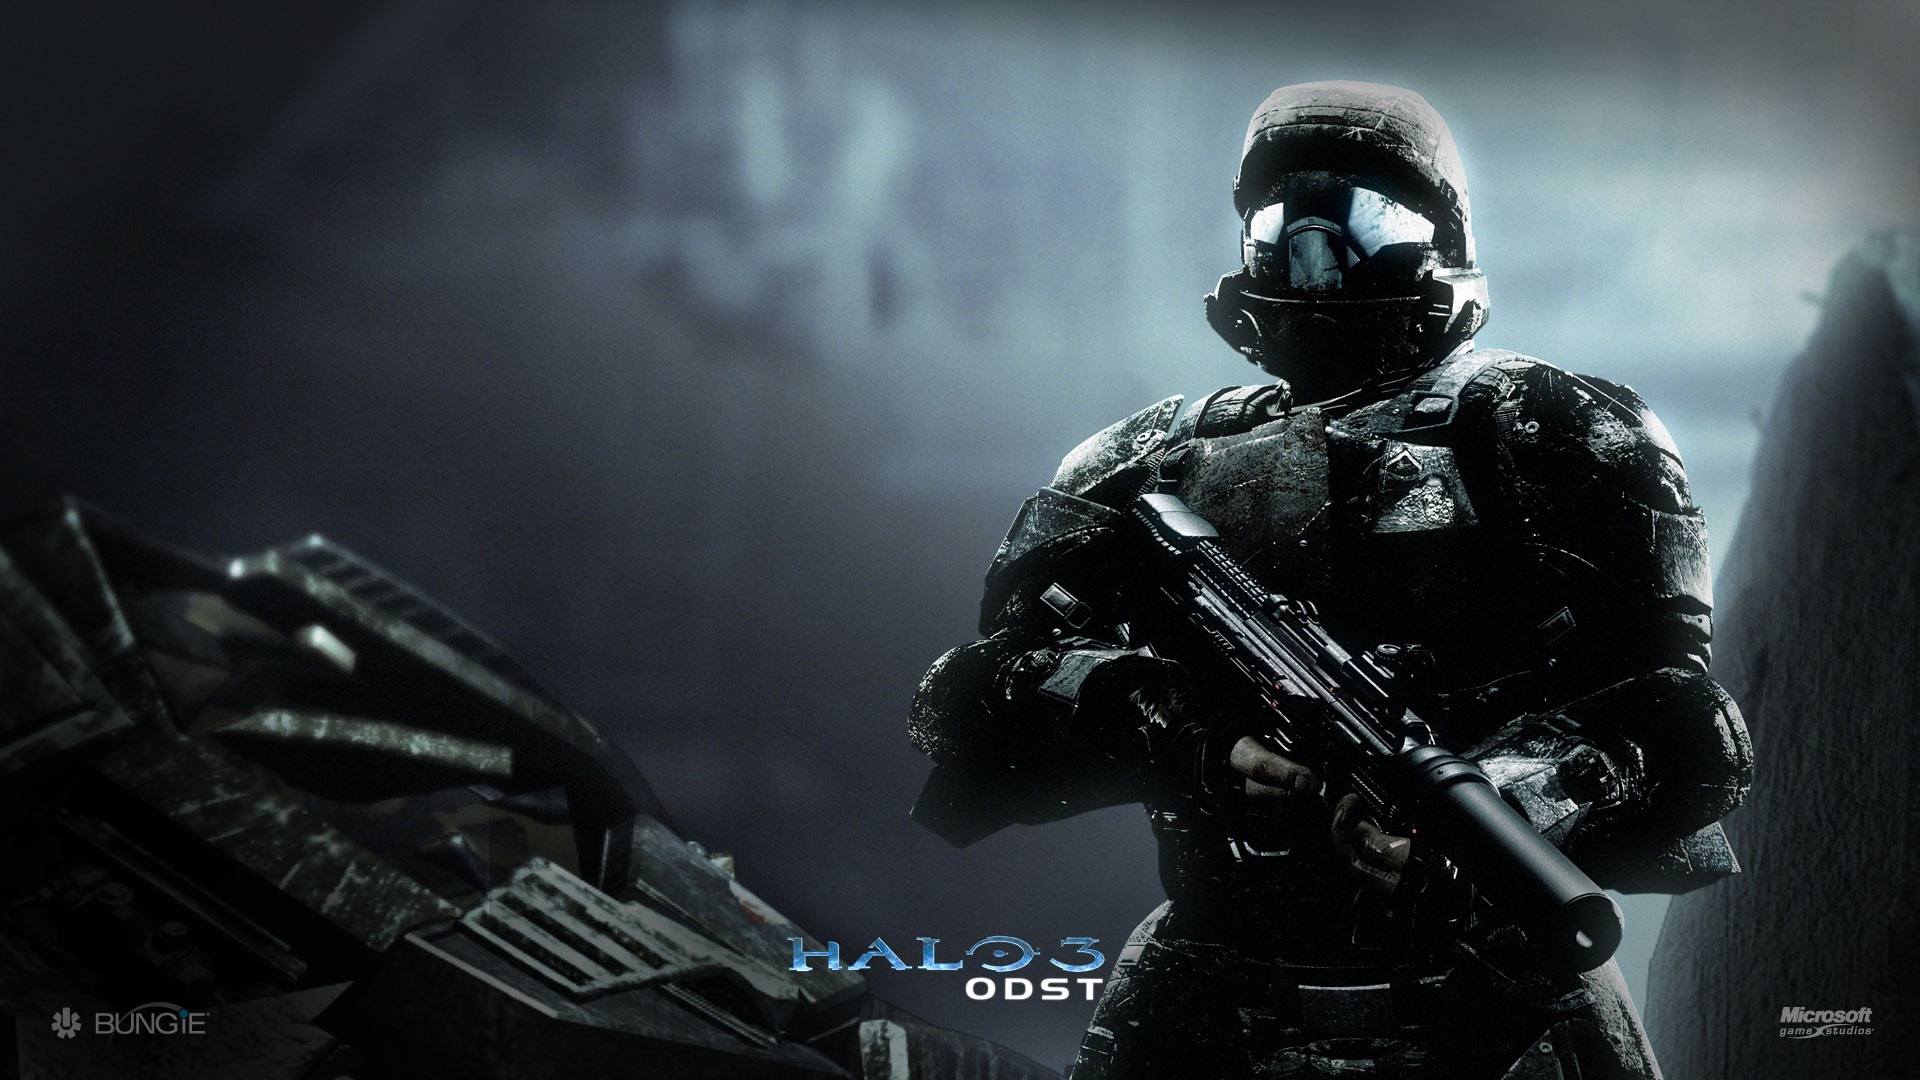 1920x1080 Cool Halo Wallpapers 31070 Wallpaper